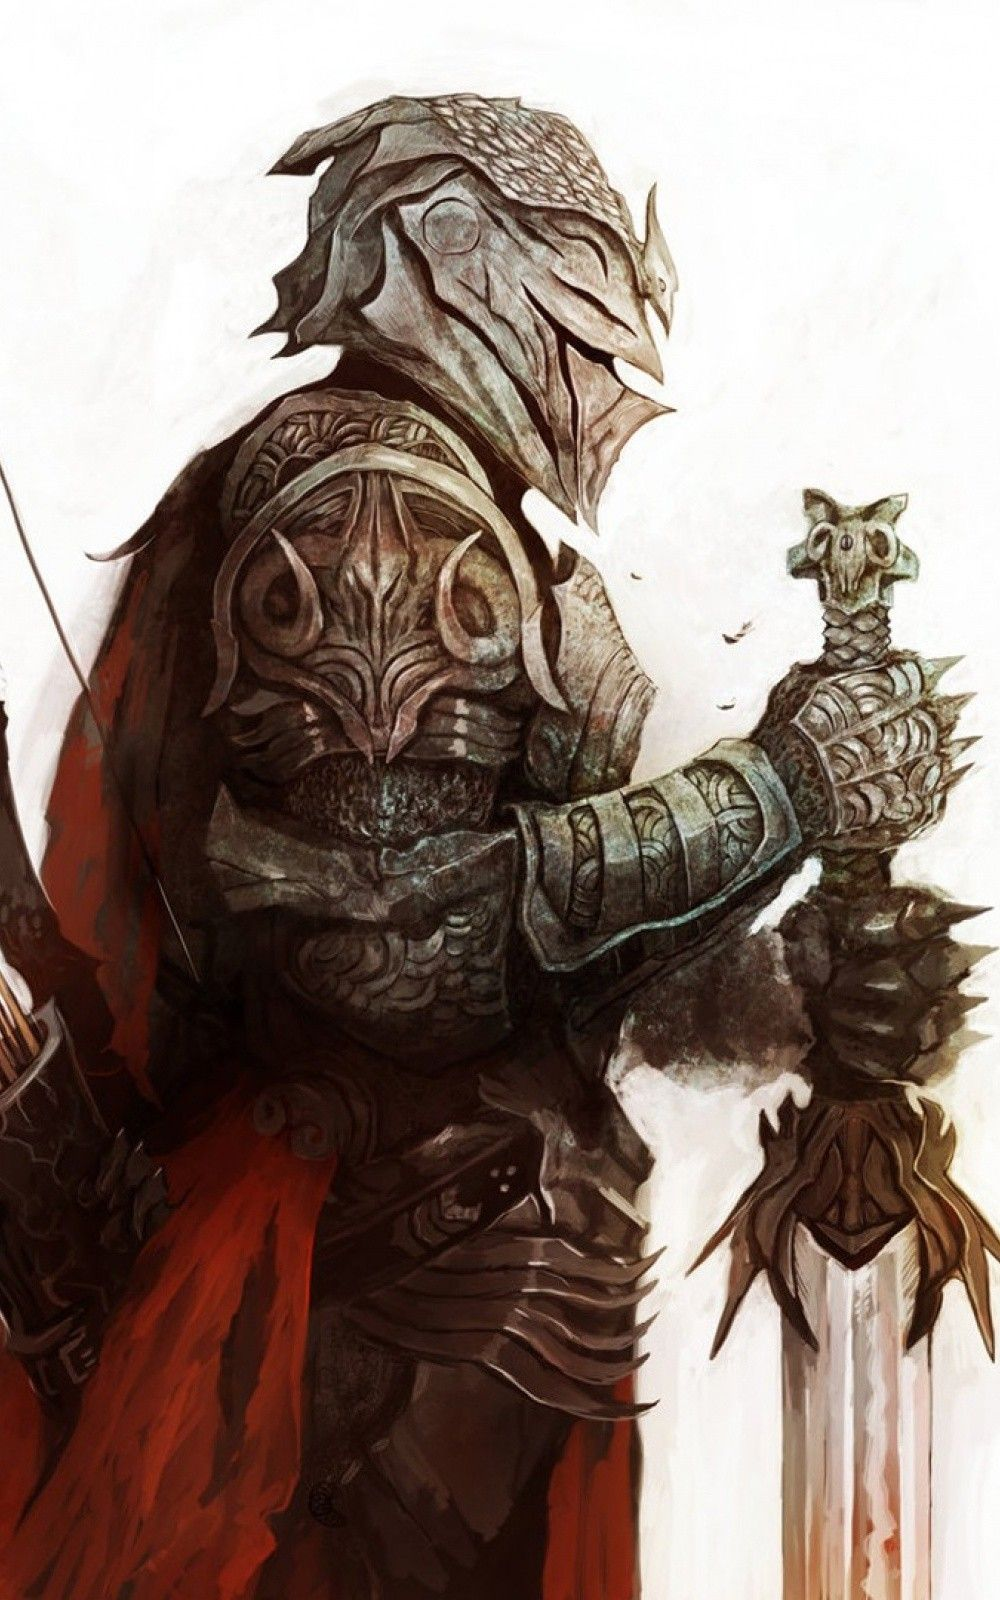 Medieval Armor Knight Sword Phone Wallpaper Hd Check More At Https Phonewallp Com Medieval Armor Knight Sword Phone W Medieval Armor Android Wallpaper Knight